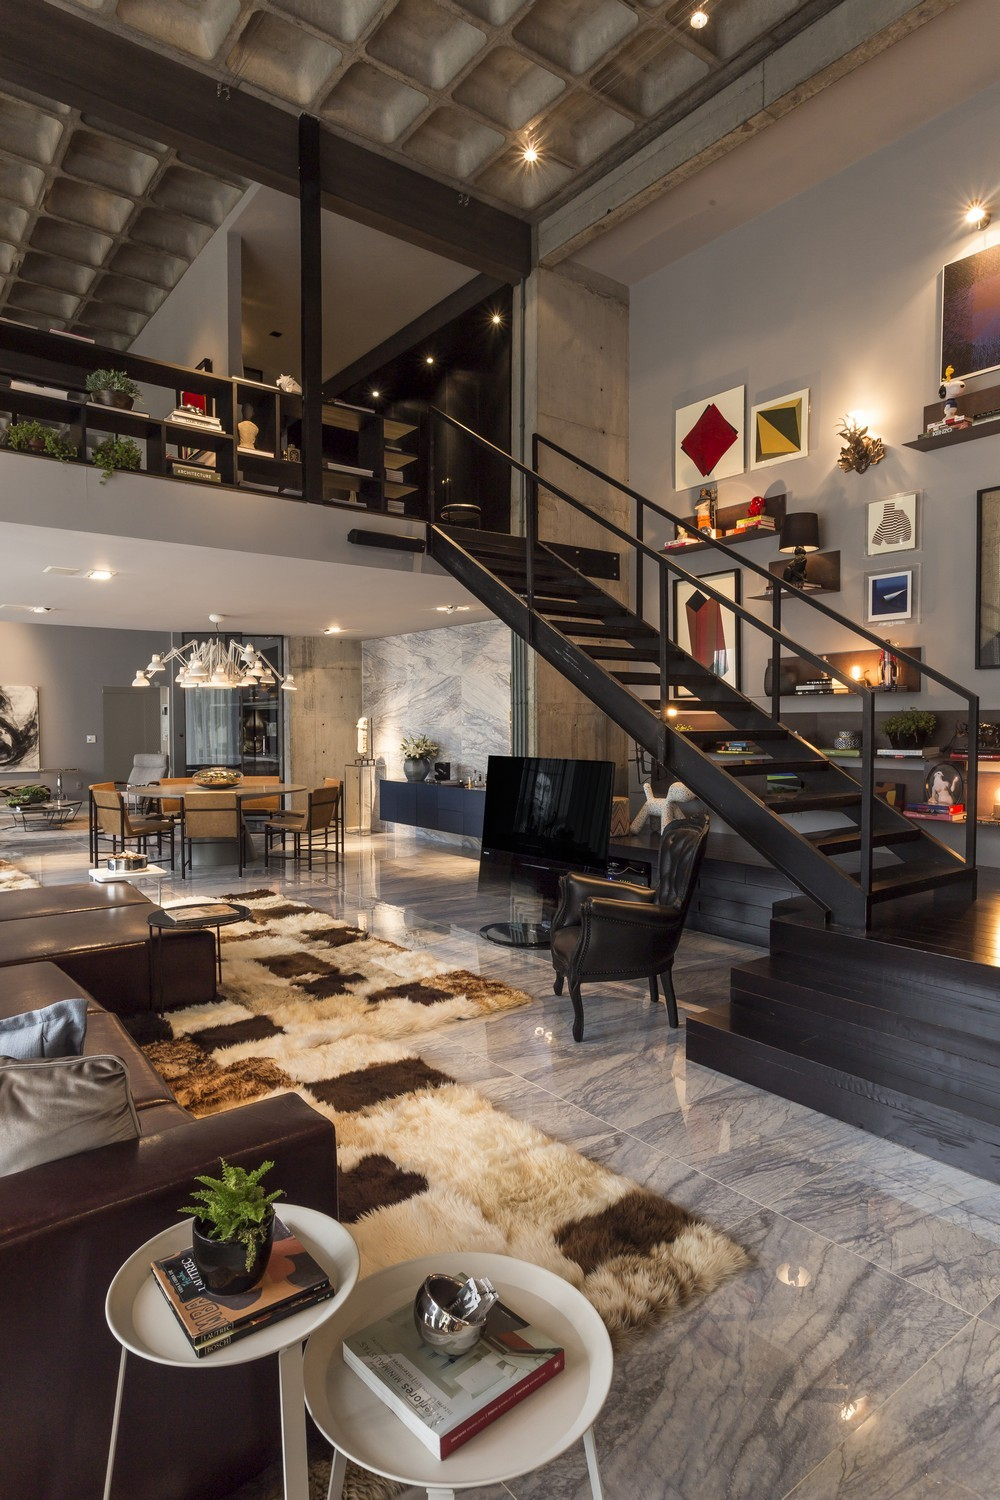 Creative Loft Apartment Designs Ideas With Beautiful Decor - RooHome